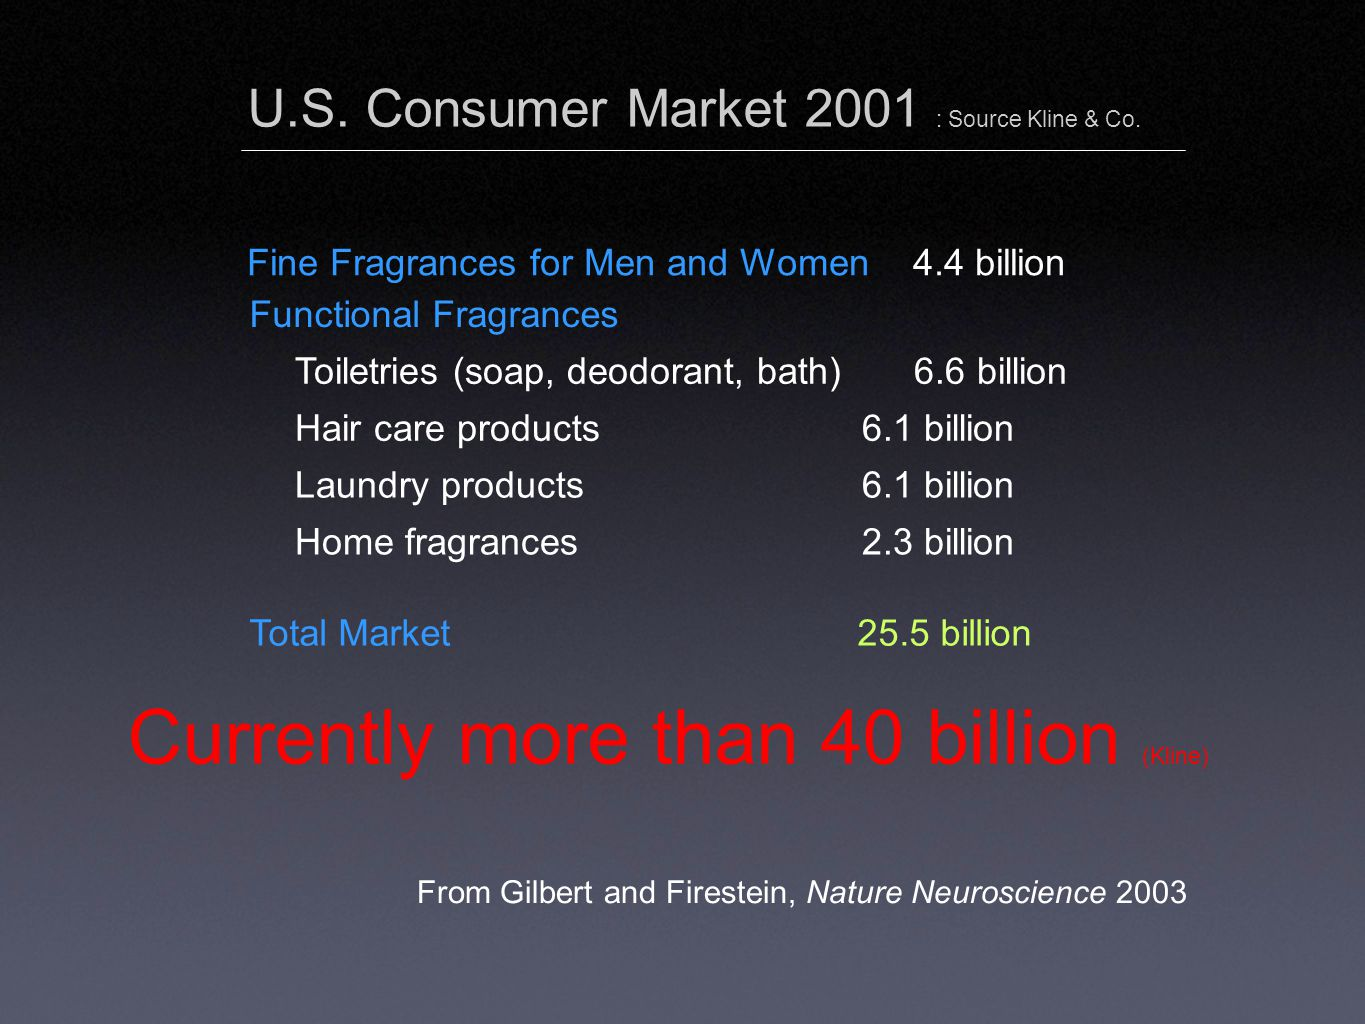 U.S. Consumer Market 2001 : Source Kline & Co.